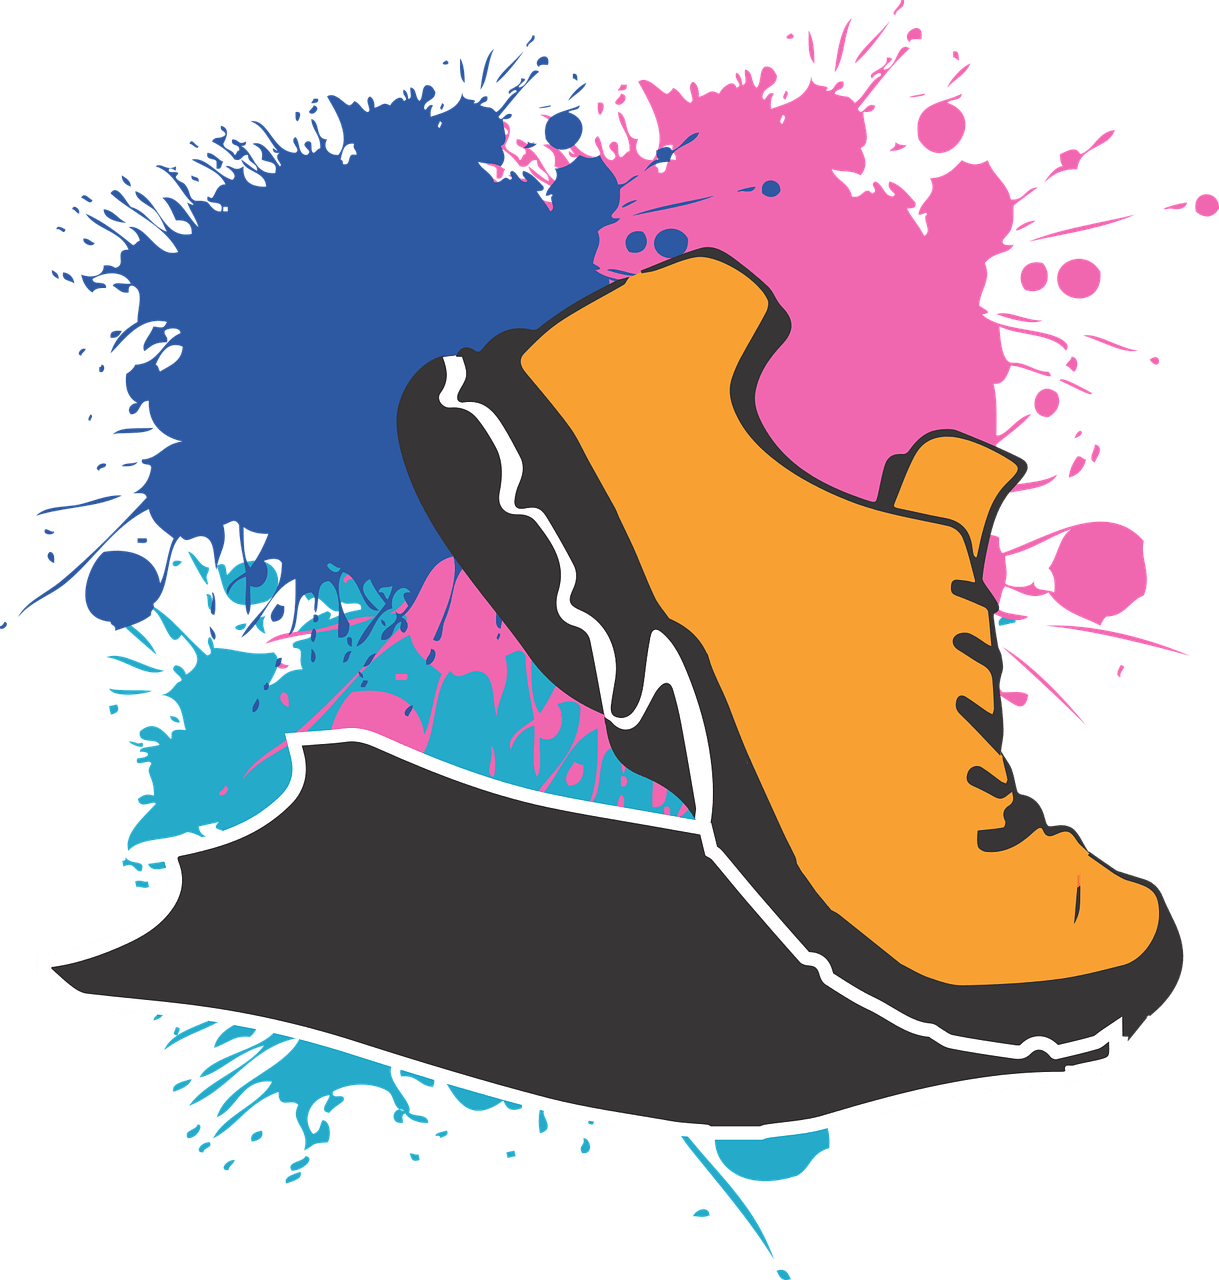 Boot stomping clipart jpg black and white It is time for the 39th Annual Potato Mantua Stomp | The Weekly Villager jpg black and white